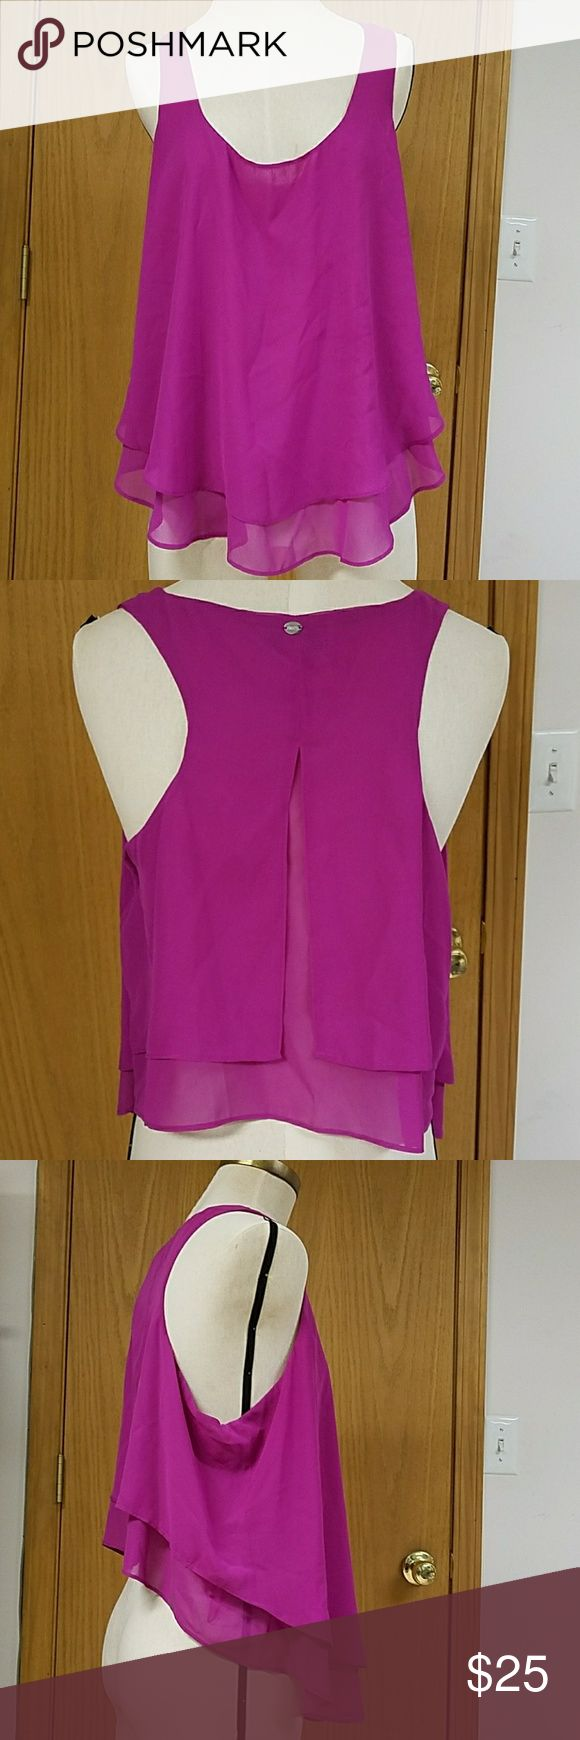 Flowy Guess Blouse Beautiful vivid magenta color, tank top cut, hangs low in the front and falls high in the back, sexy/cute style Guess Tops Blouses